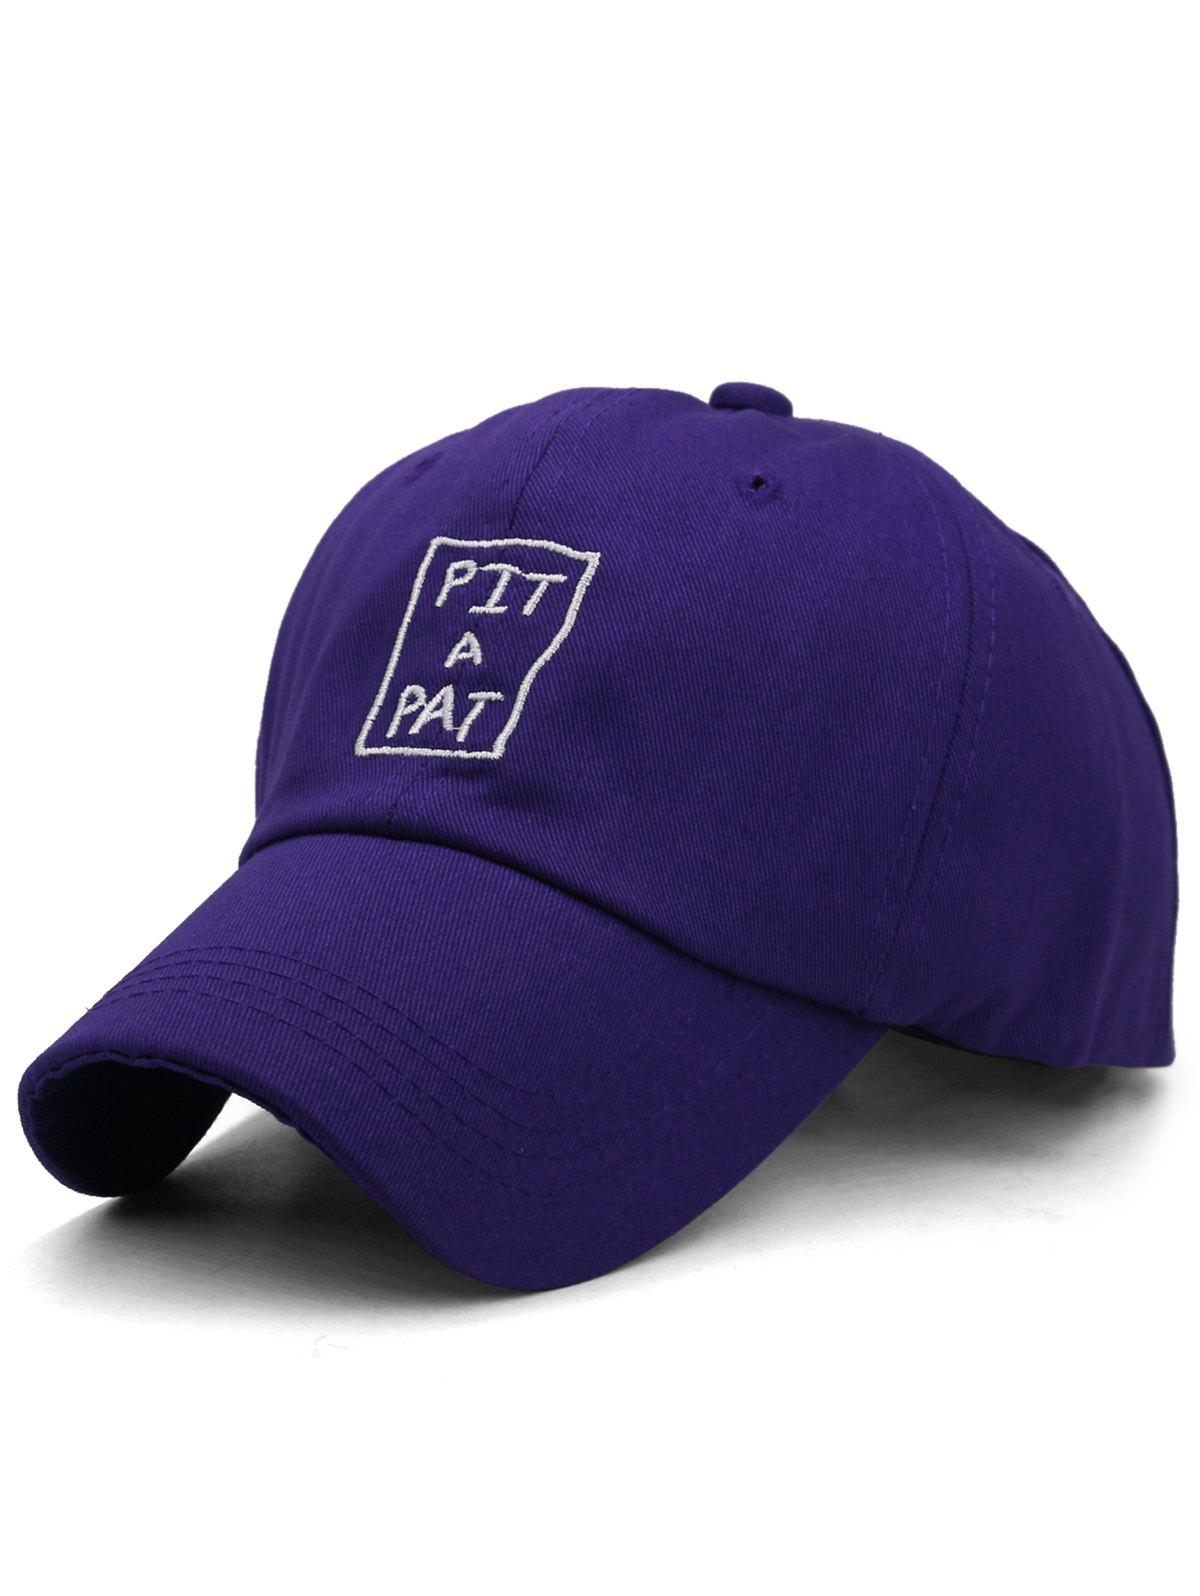 PIT A PAT Embroidery Sunscreen Hat - INDIGO